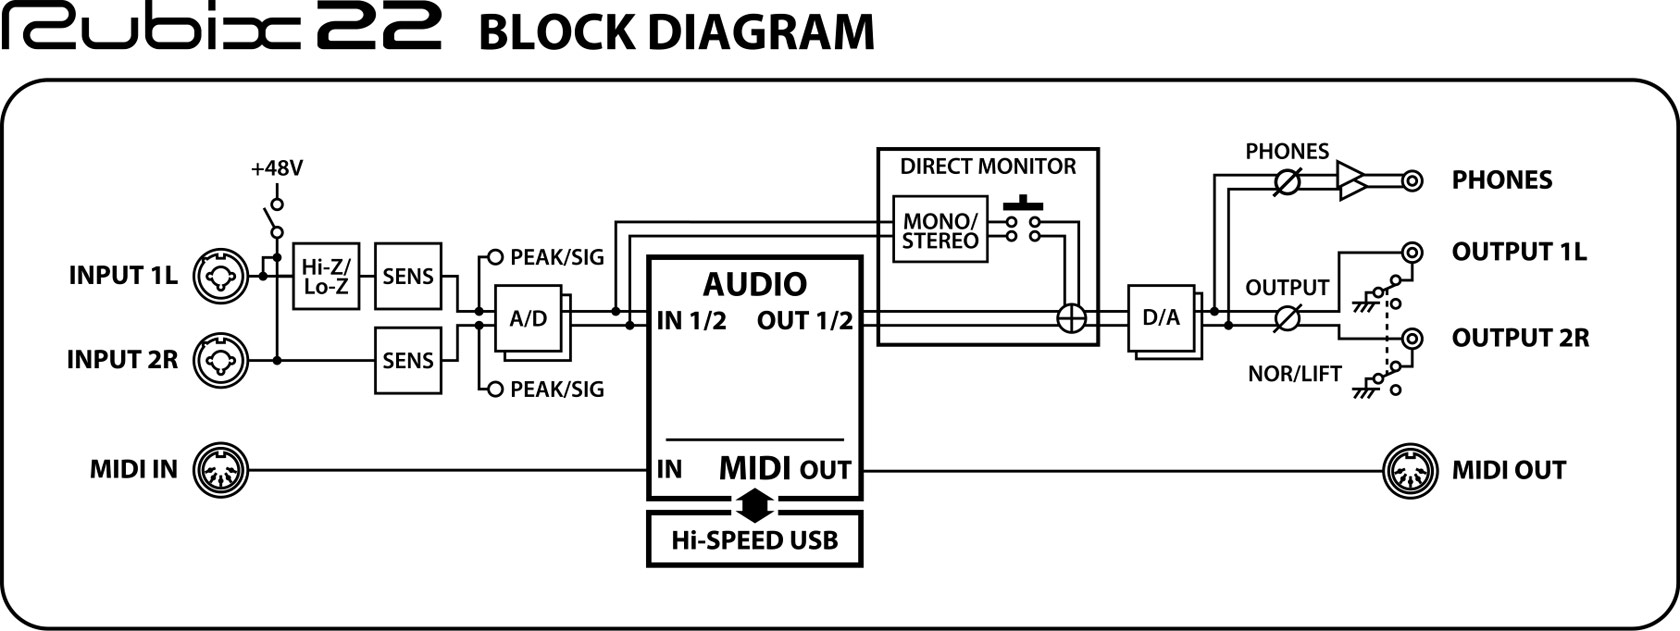 hight resolution of roland rubix22 usb audio interface monousb schematic electrical block diagram of monousb interface